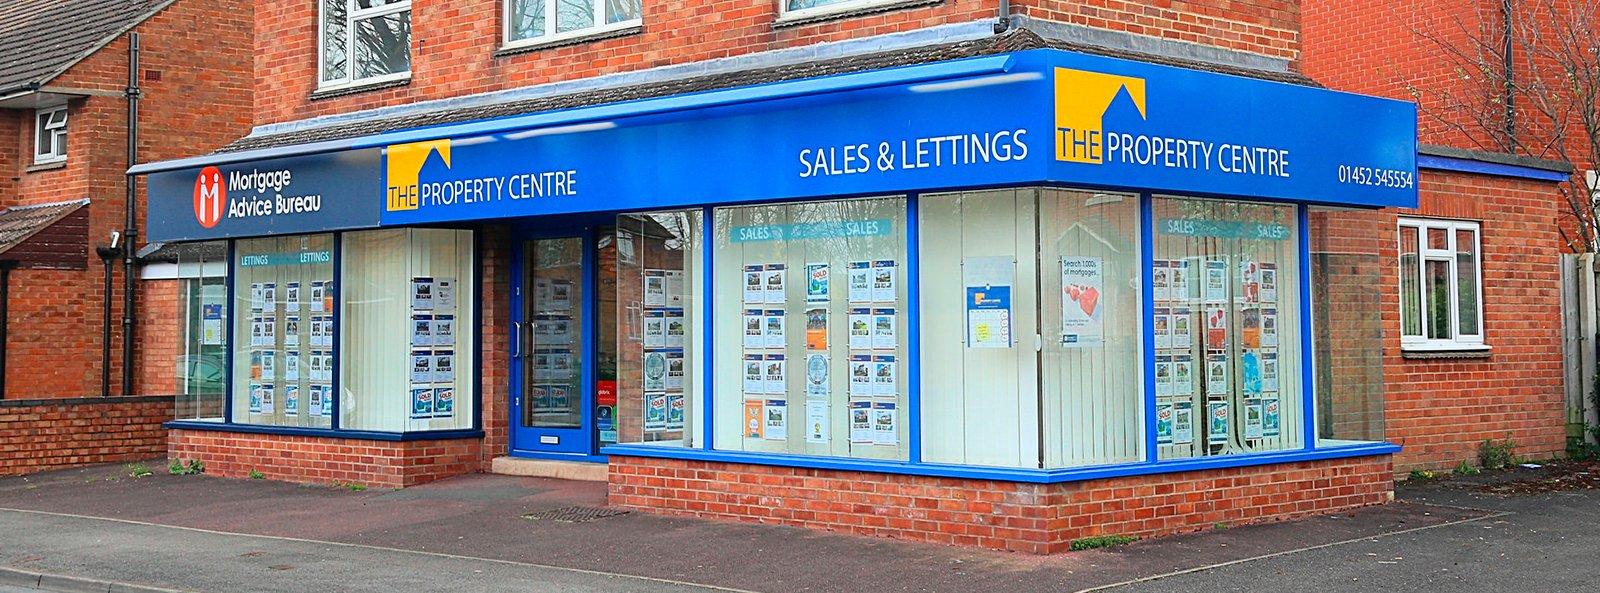 Churchdown Sales & Lettings